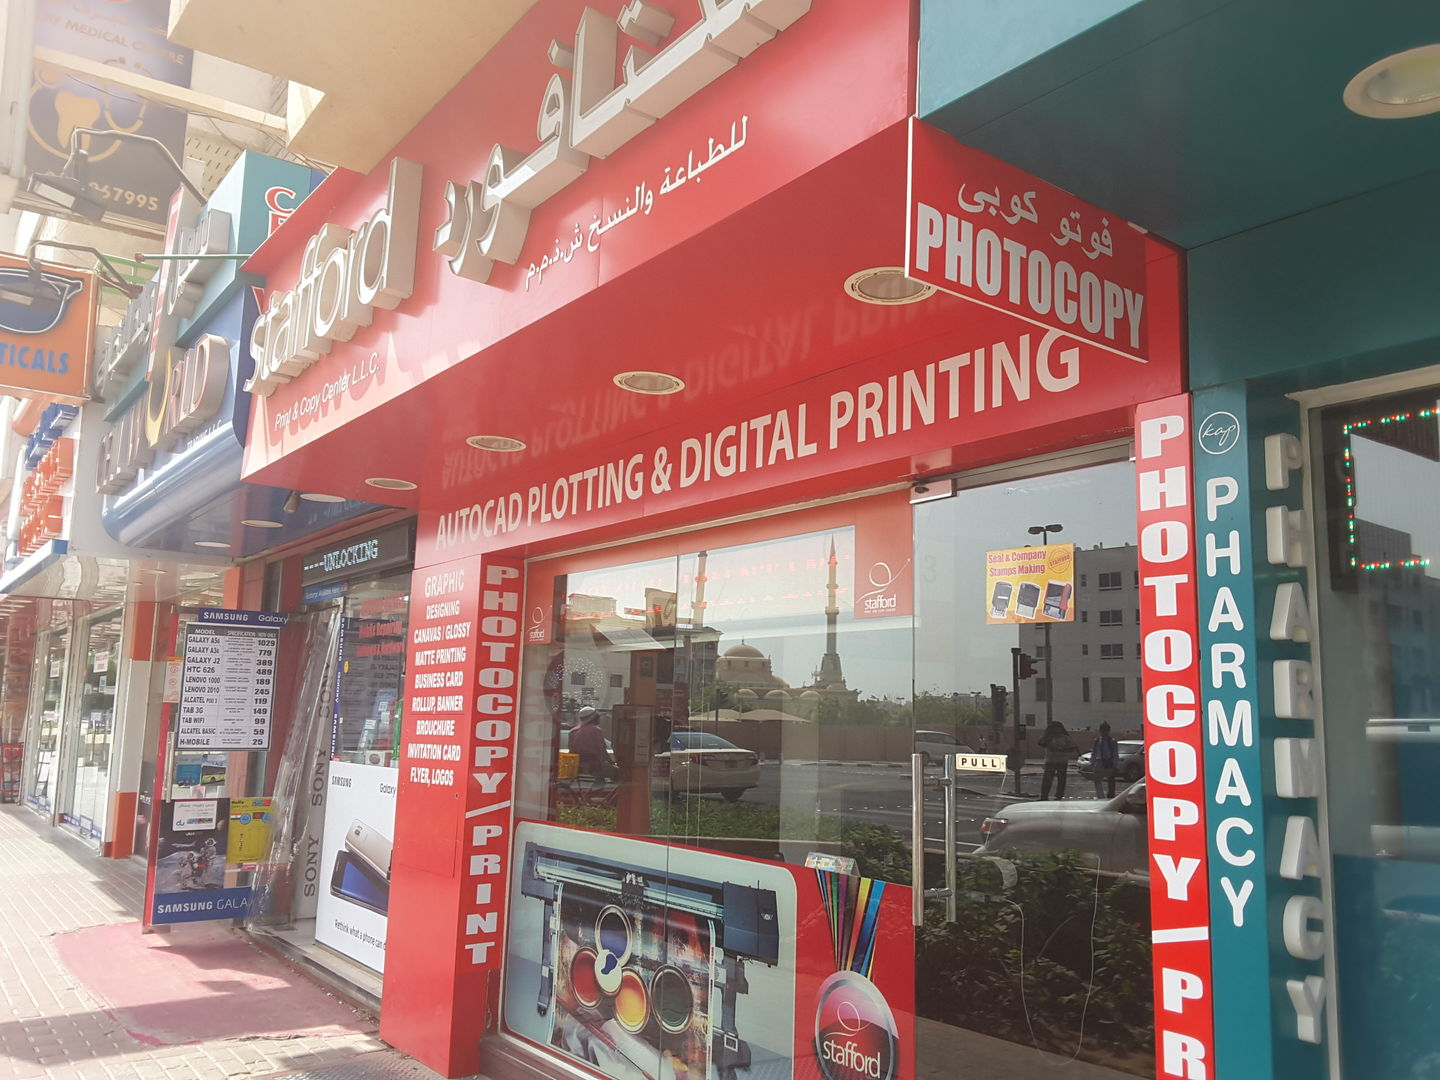 HiDubai-business-stafford-print-copy-center-government-public-services-printing-typing-services-al-karama-dubai-2